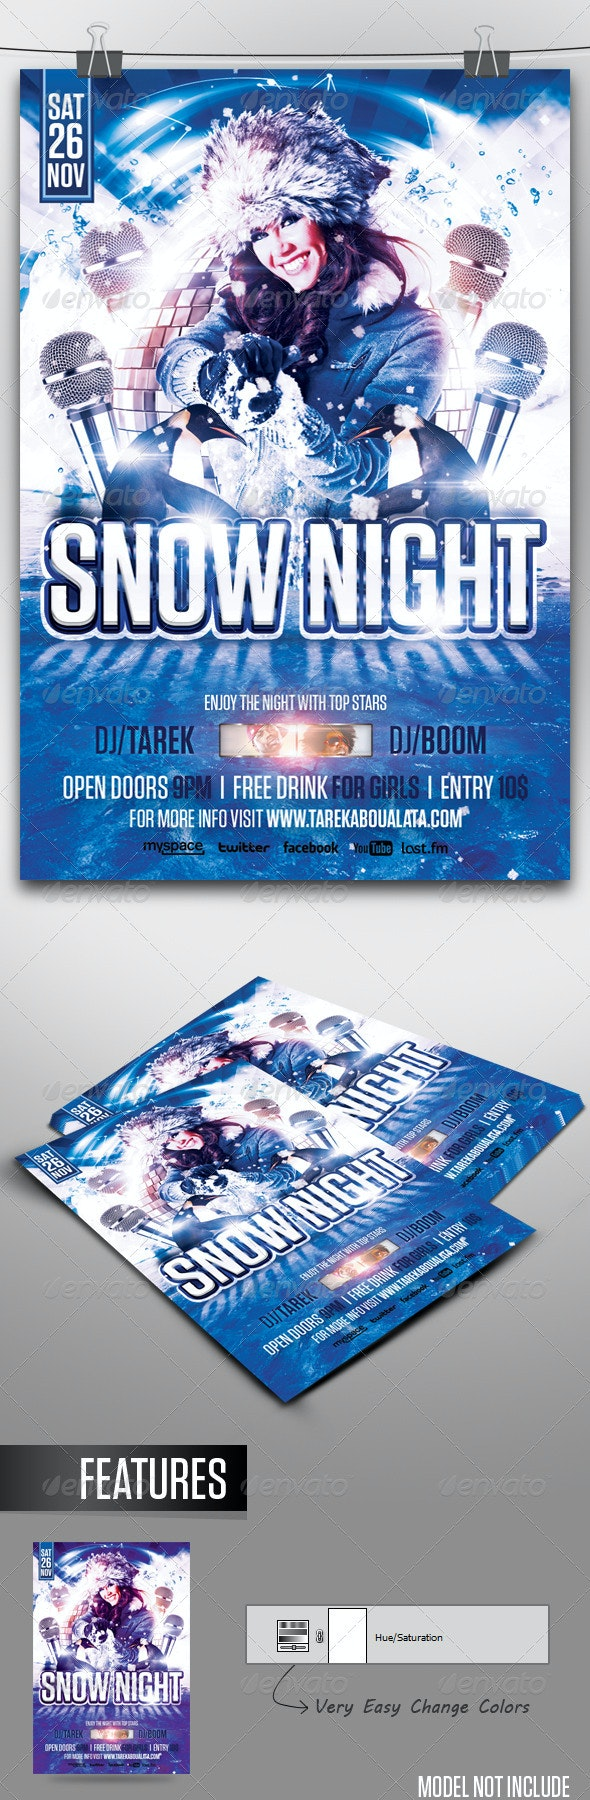 Snow Night Flyer - Clubs & Parties Events